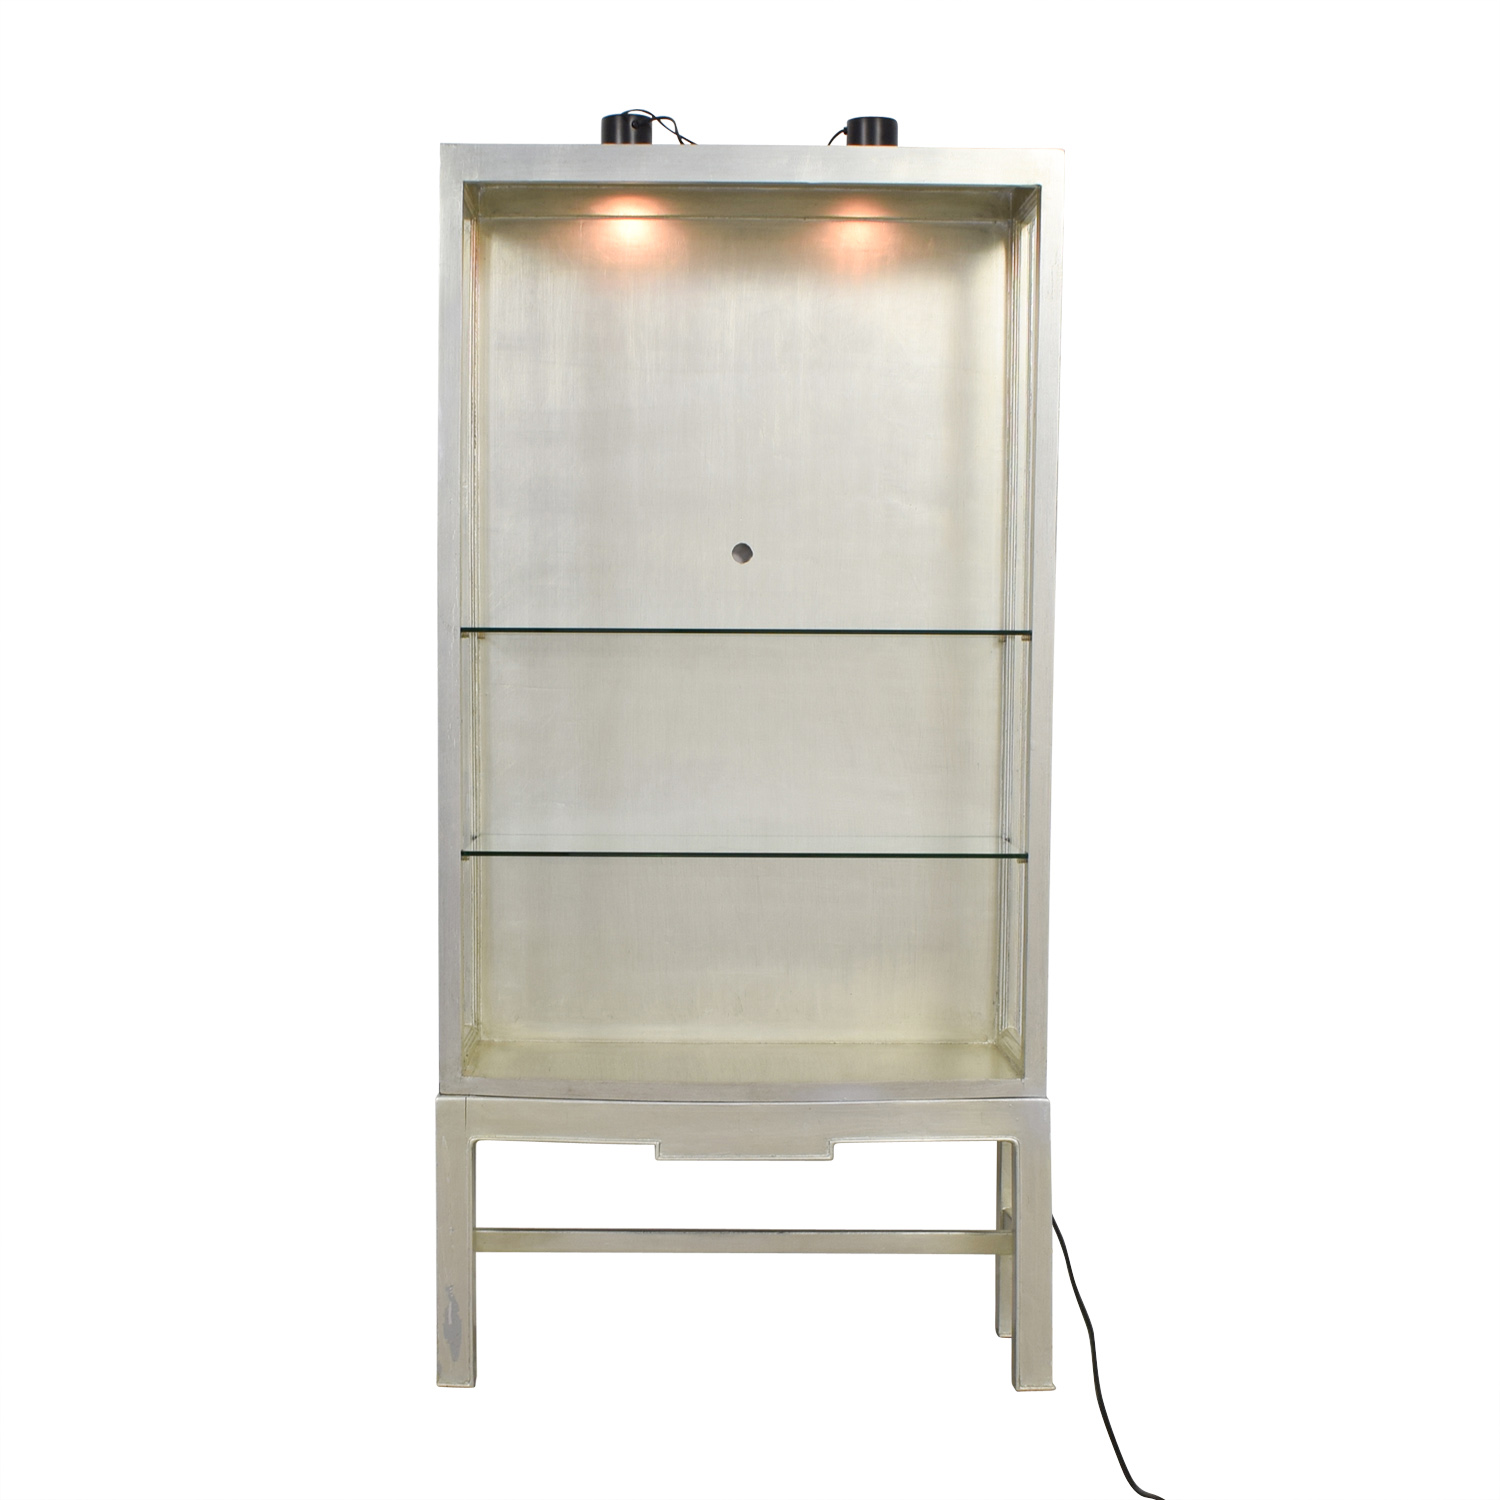 Horchow Horchow Silver and Glass Shelving Unit with Lights on sale